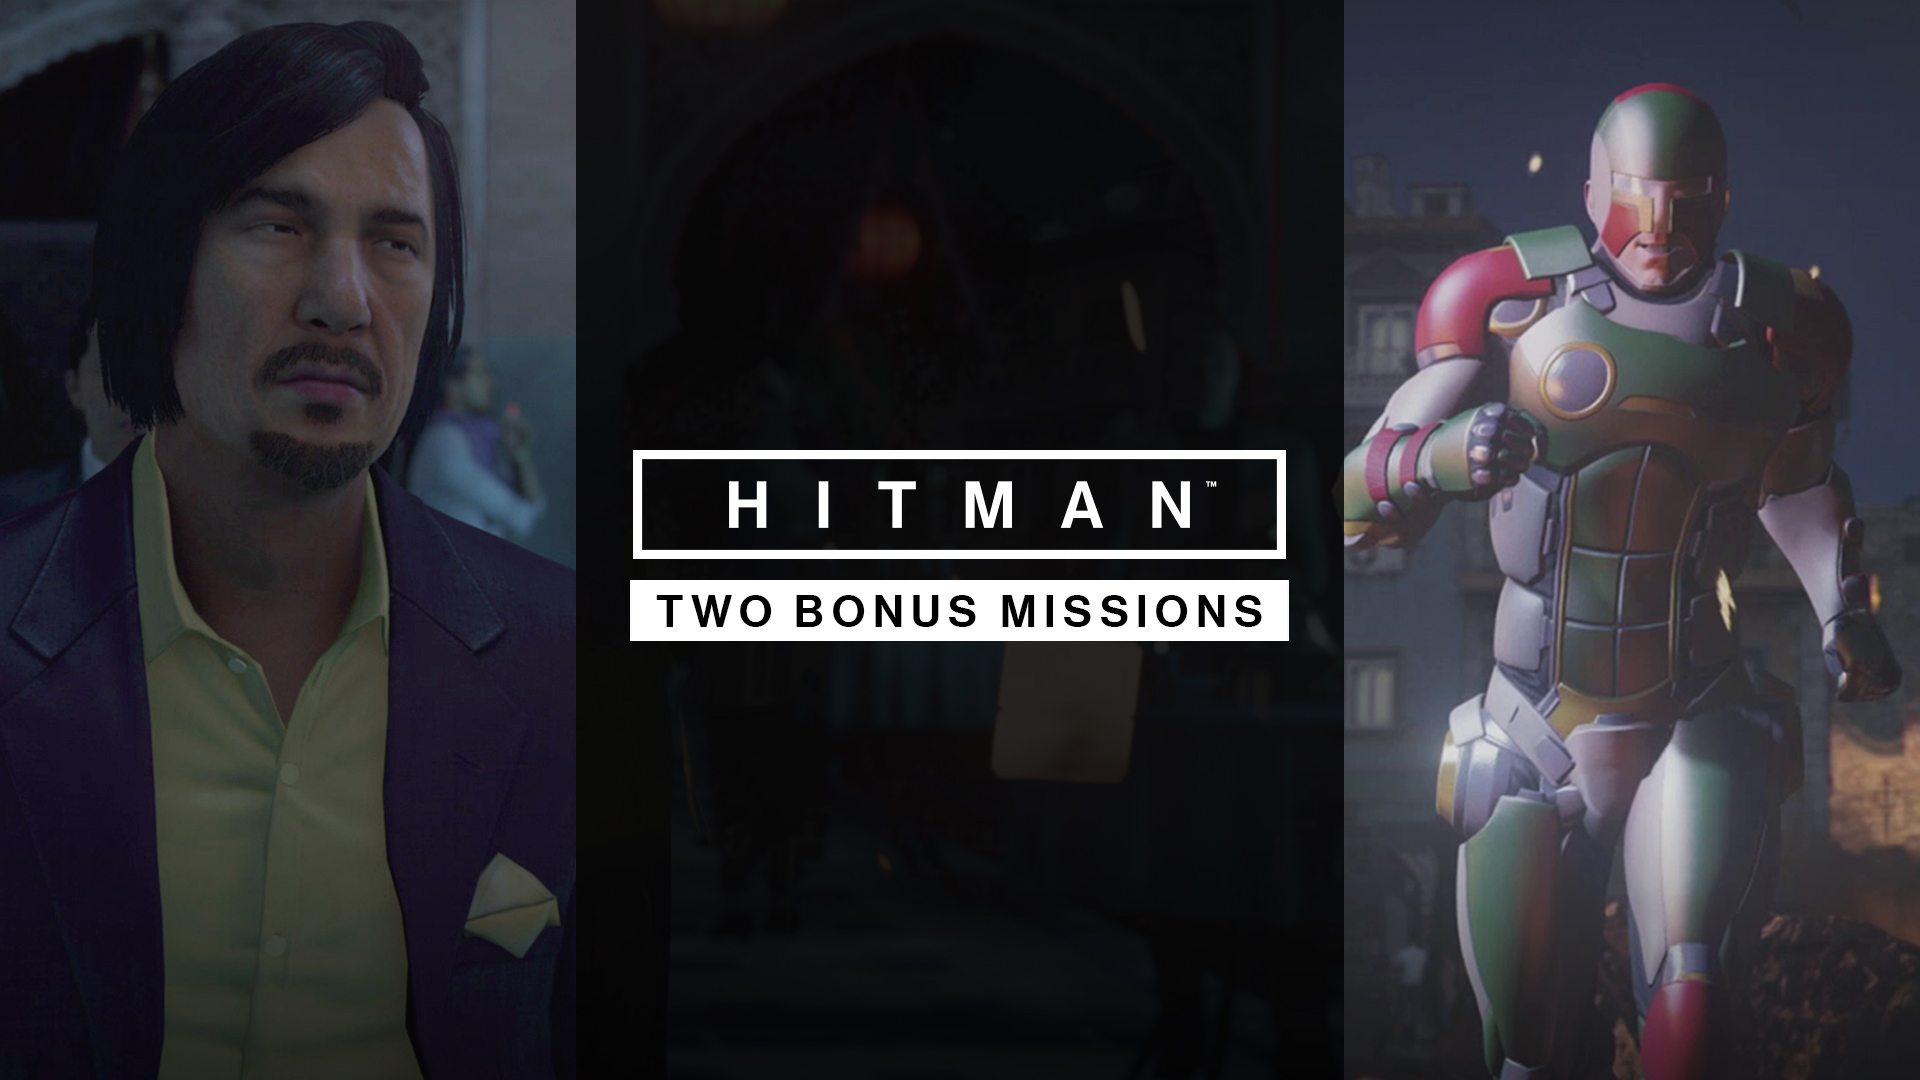 HITMAN Summer Bonus Episode Announced at E3 2016 for July